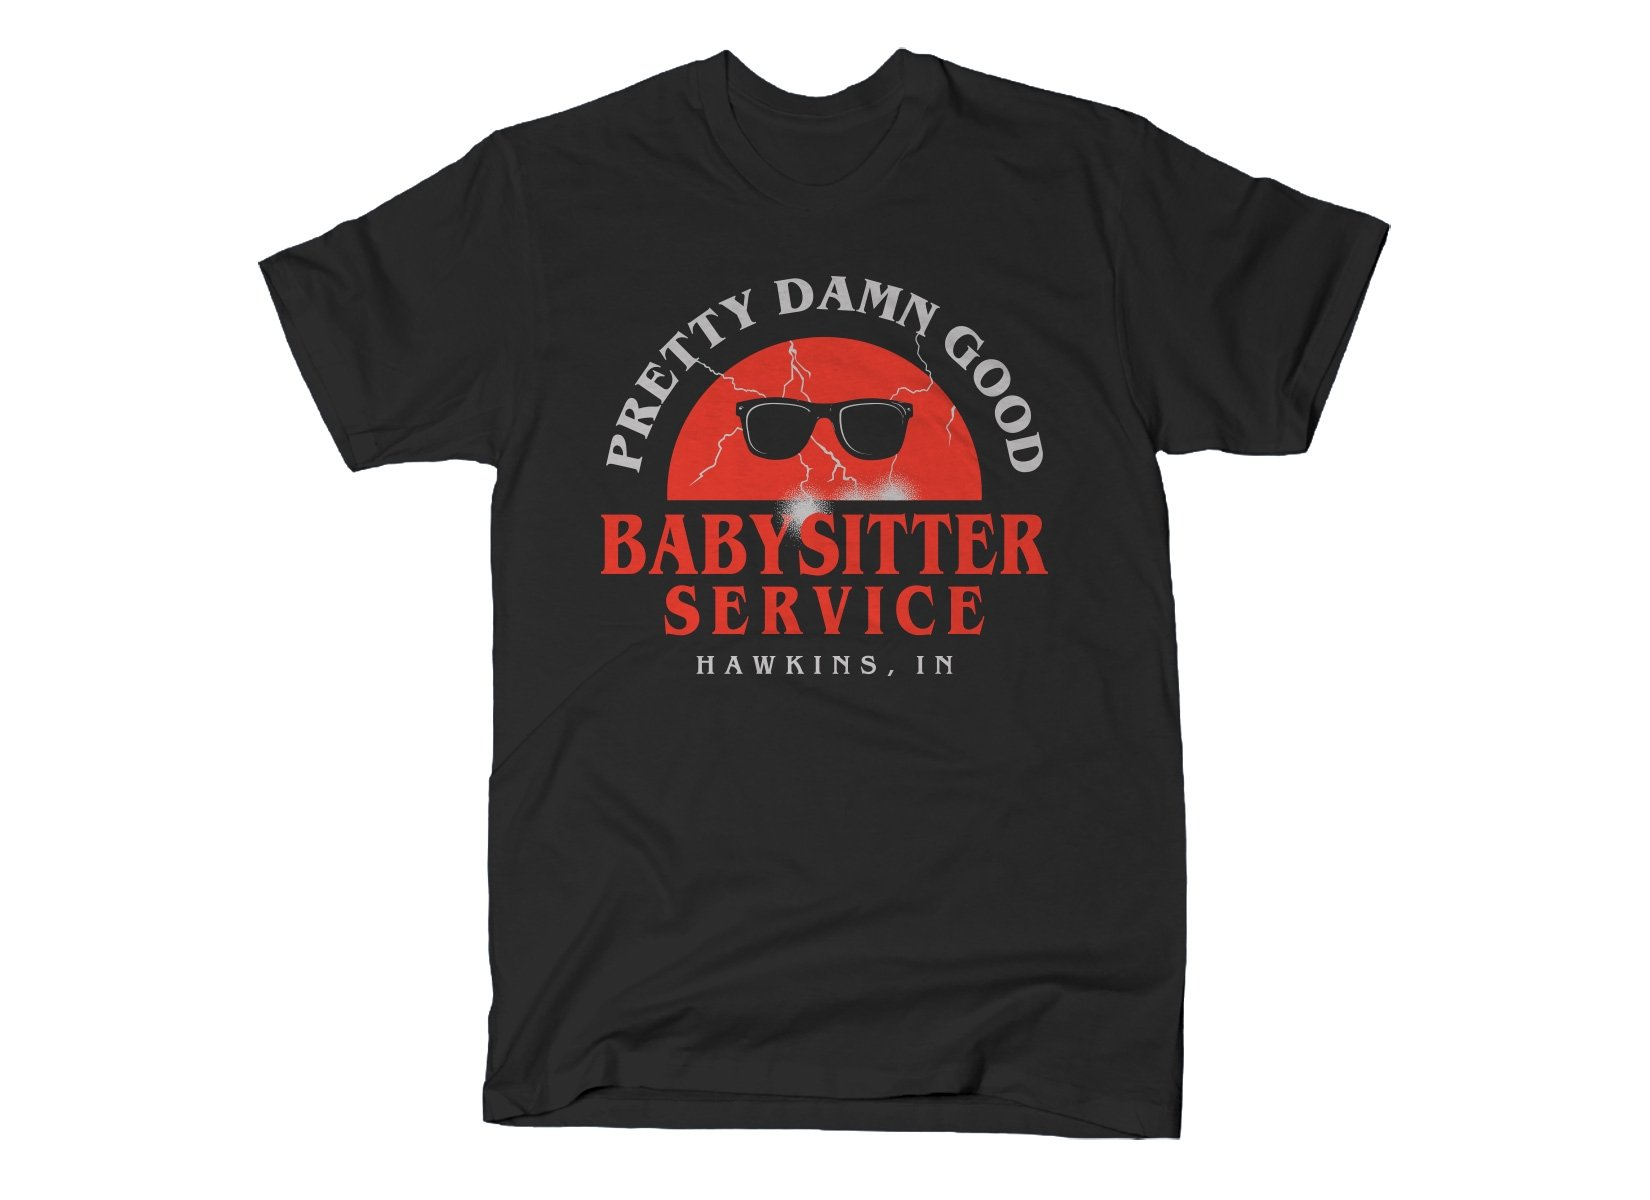 Pretty Damn Good Babysitter Service on Mens T-Shirt